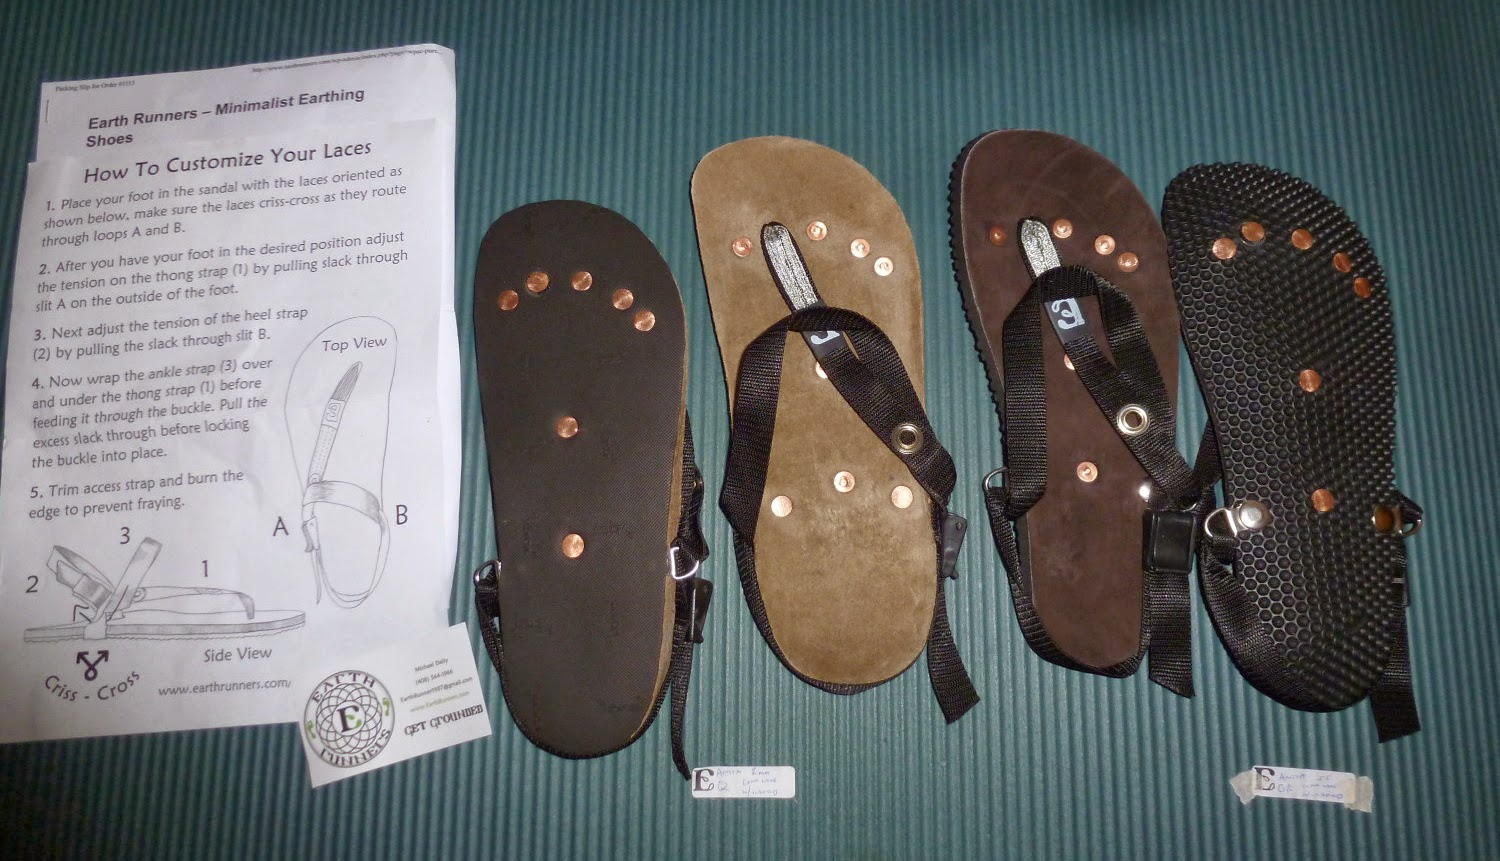 Anita S Health Blog Earth Runners Earthing Sandals